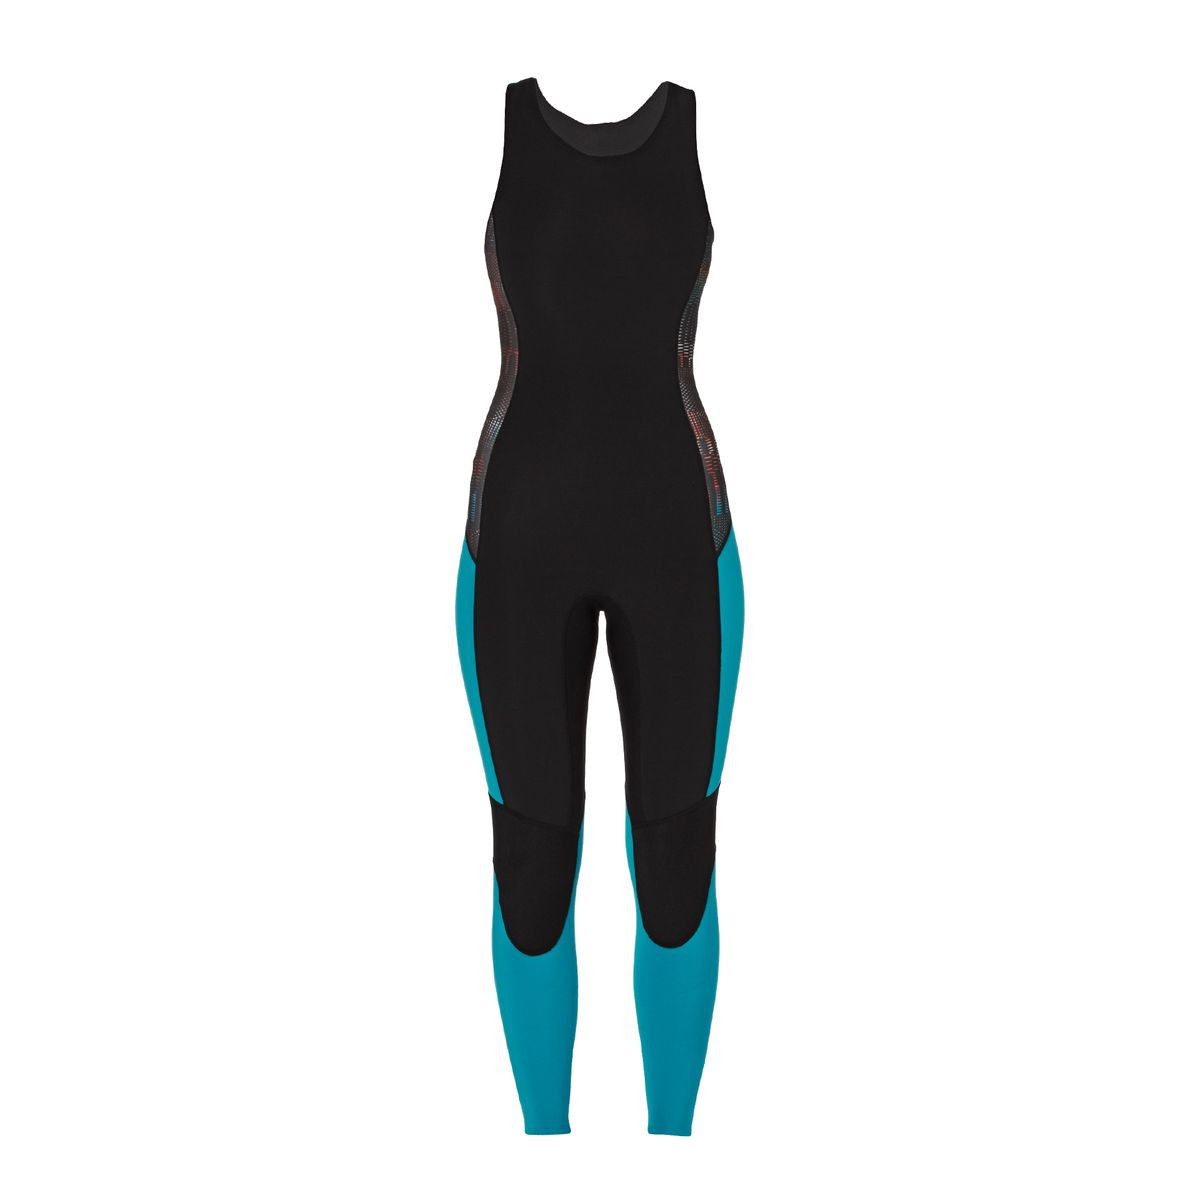 42646033ba Patagonia Womens R1 1.5mm Zipperless Long Jane Wetsuit - Howling Turquoise